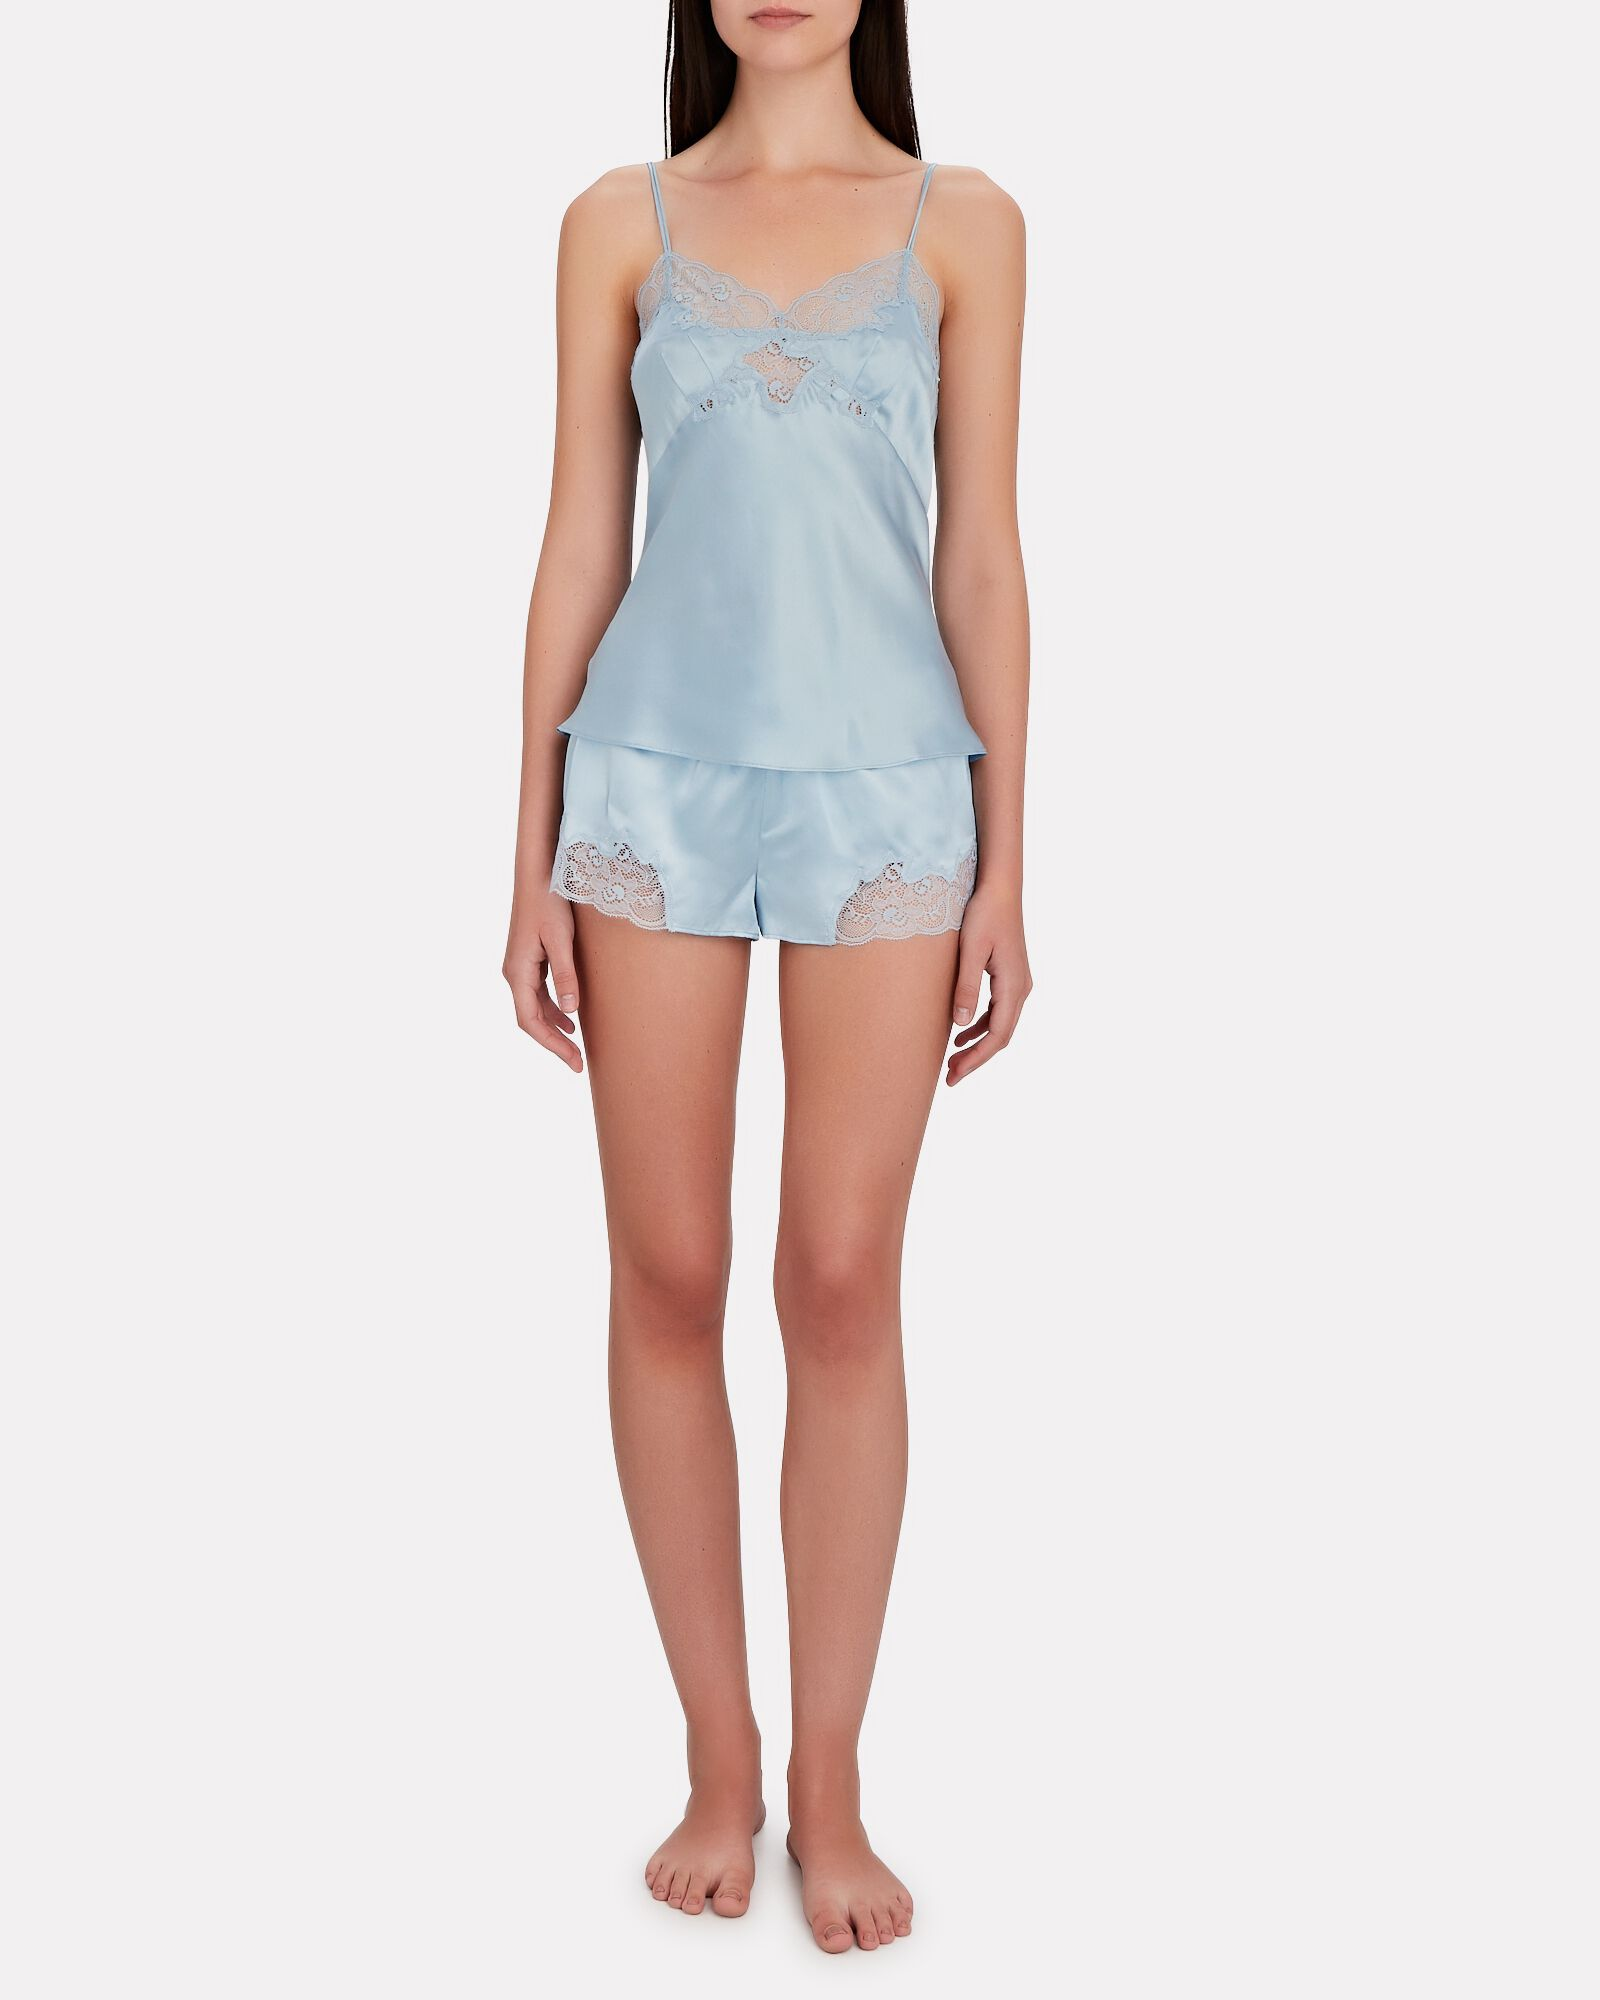 Lace-Trimmed Silk Charmeuse Camisole, BLUE-LT, hi-res